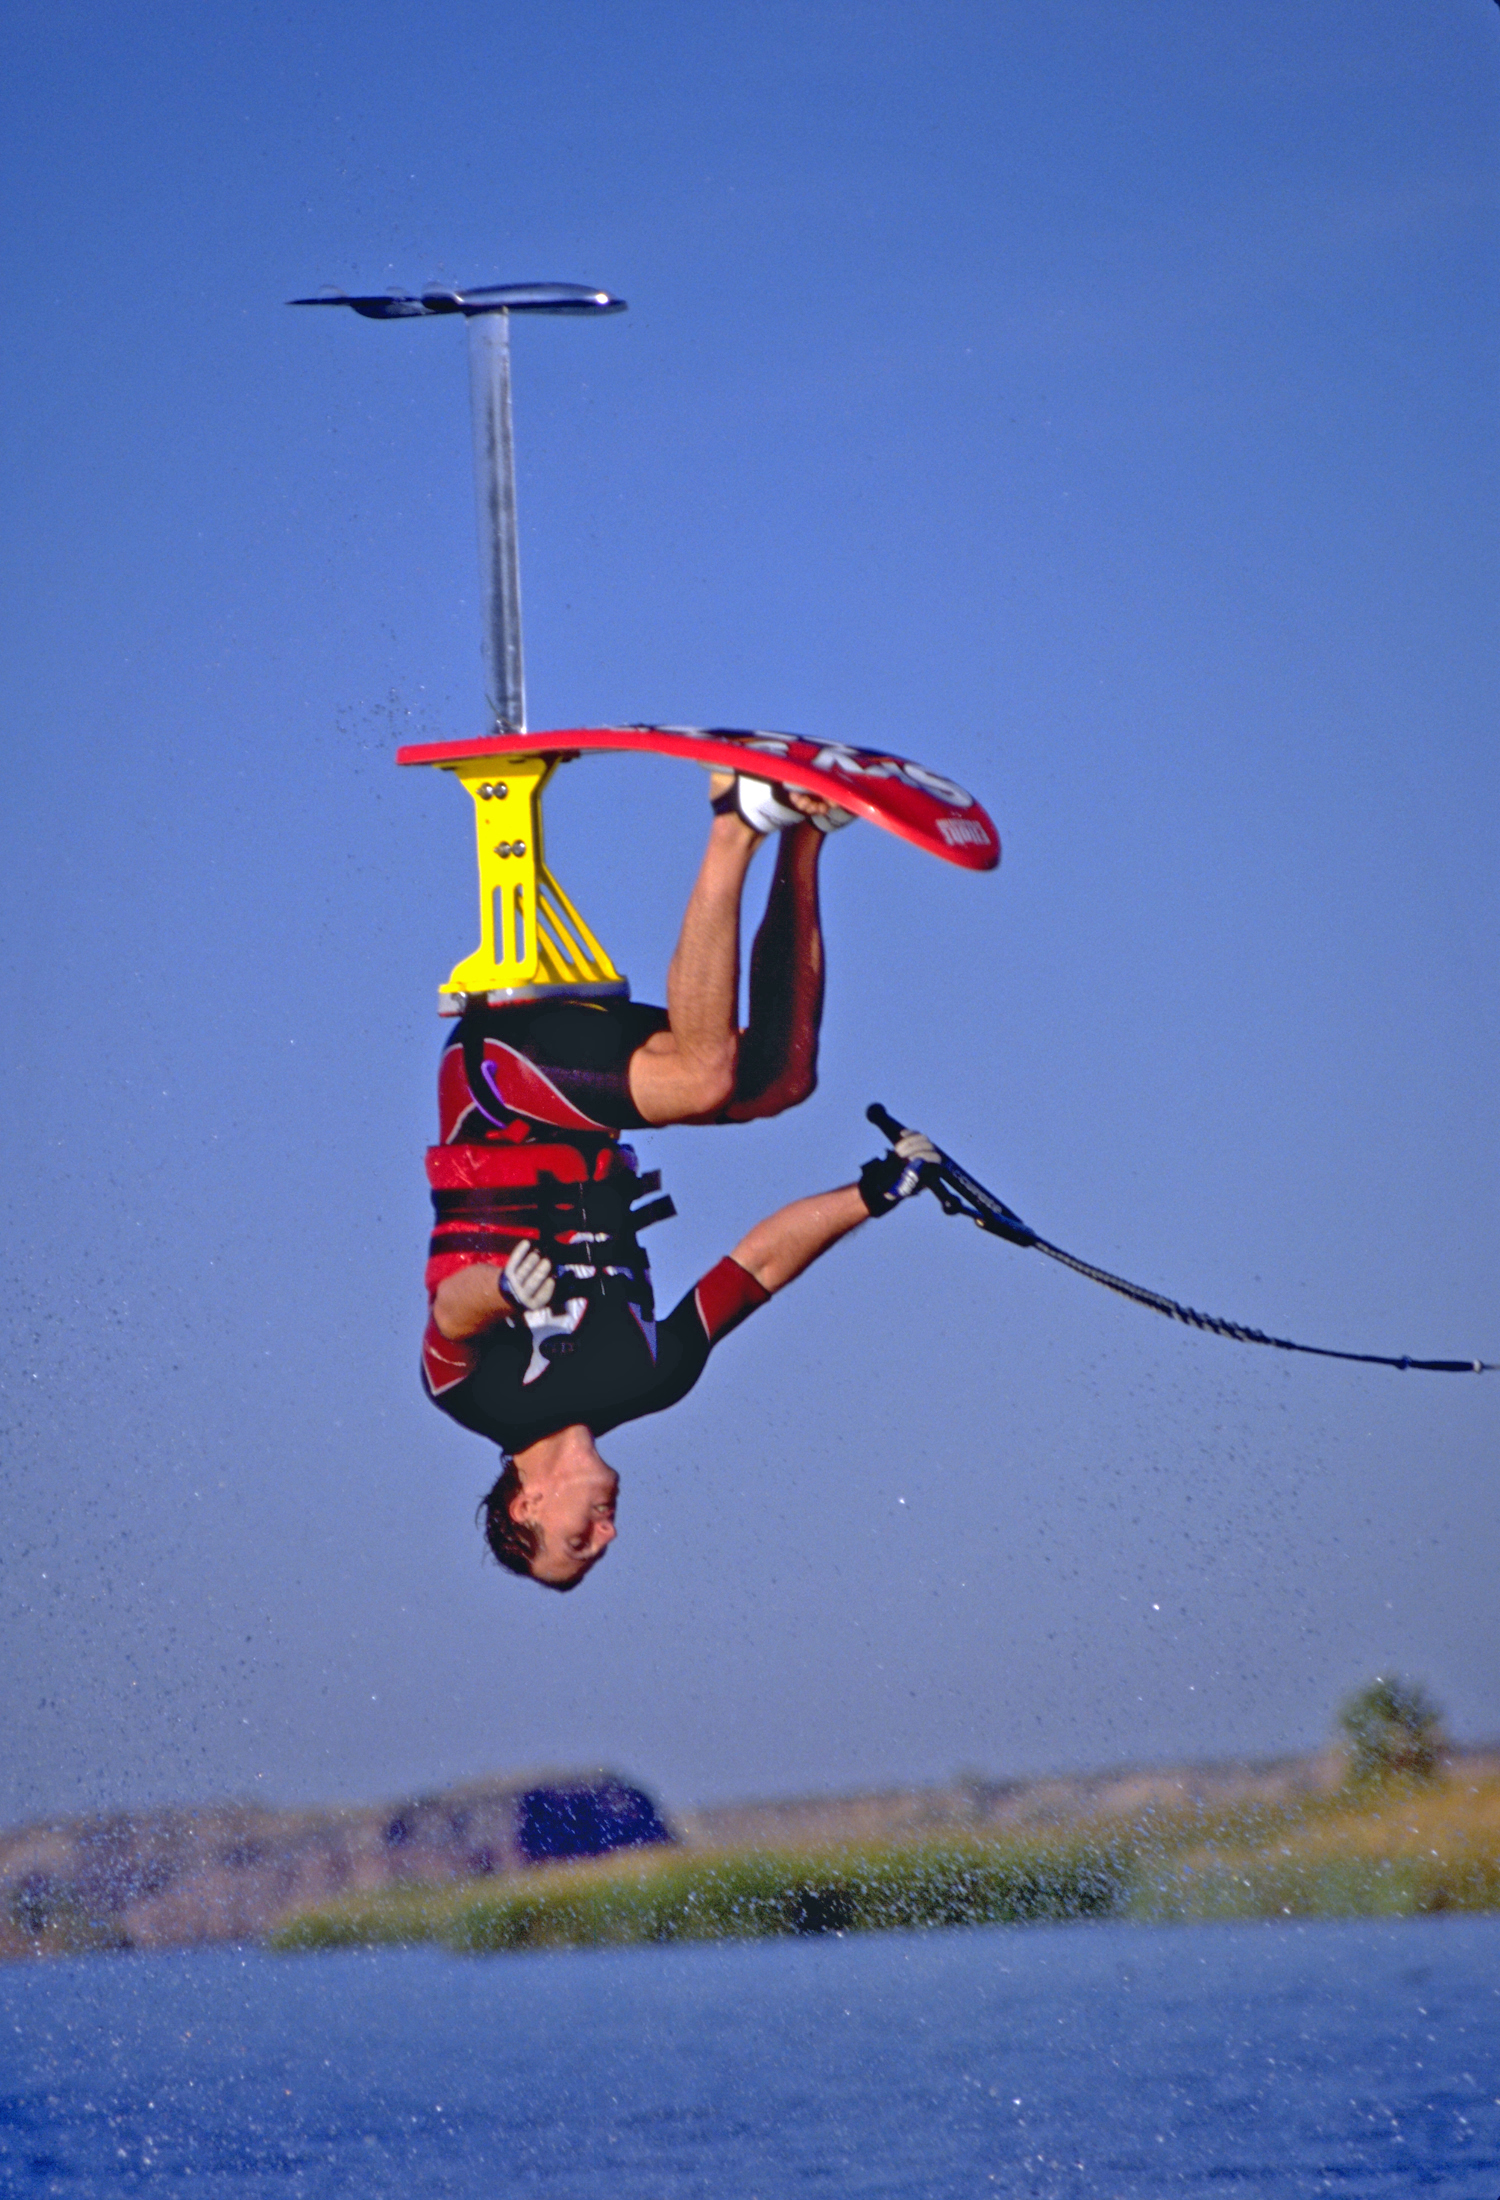 98_TonyKlarich.com_Water_Skiing_Hydrofoil_GAINER_Creative_Commons_Free_3MR